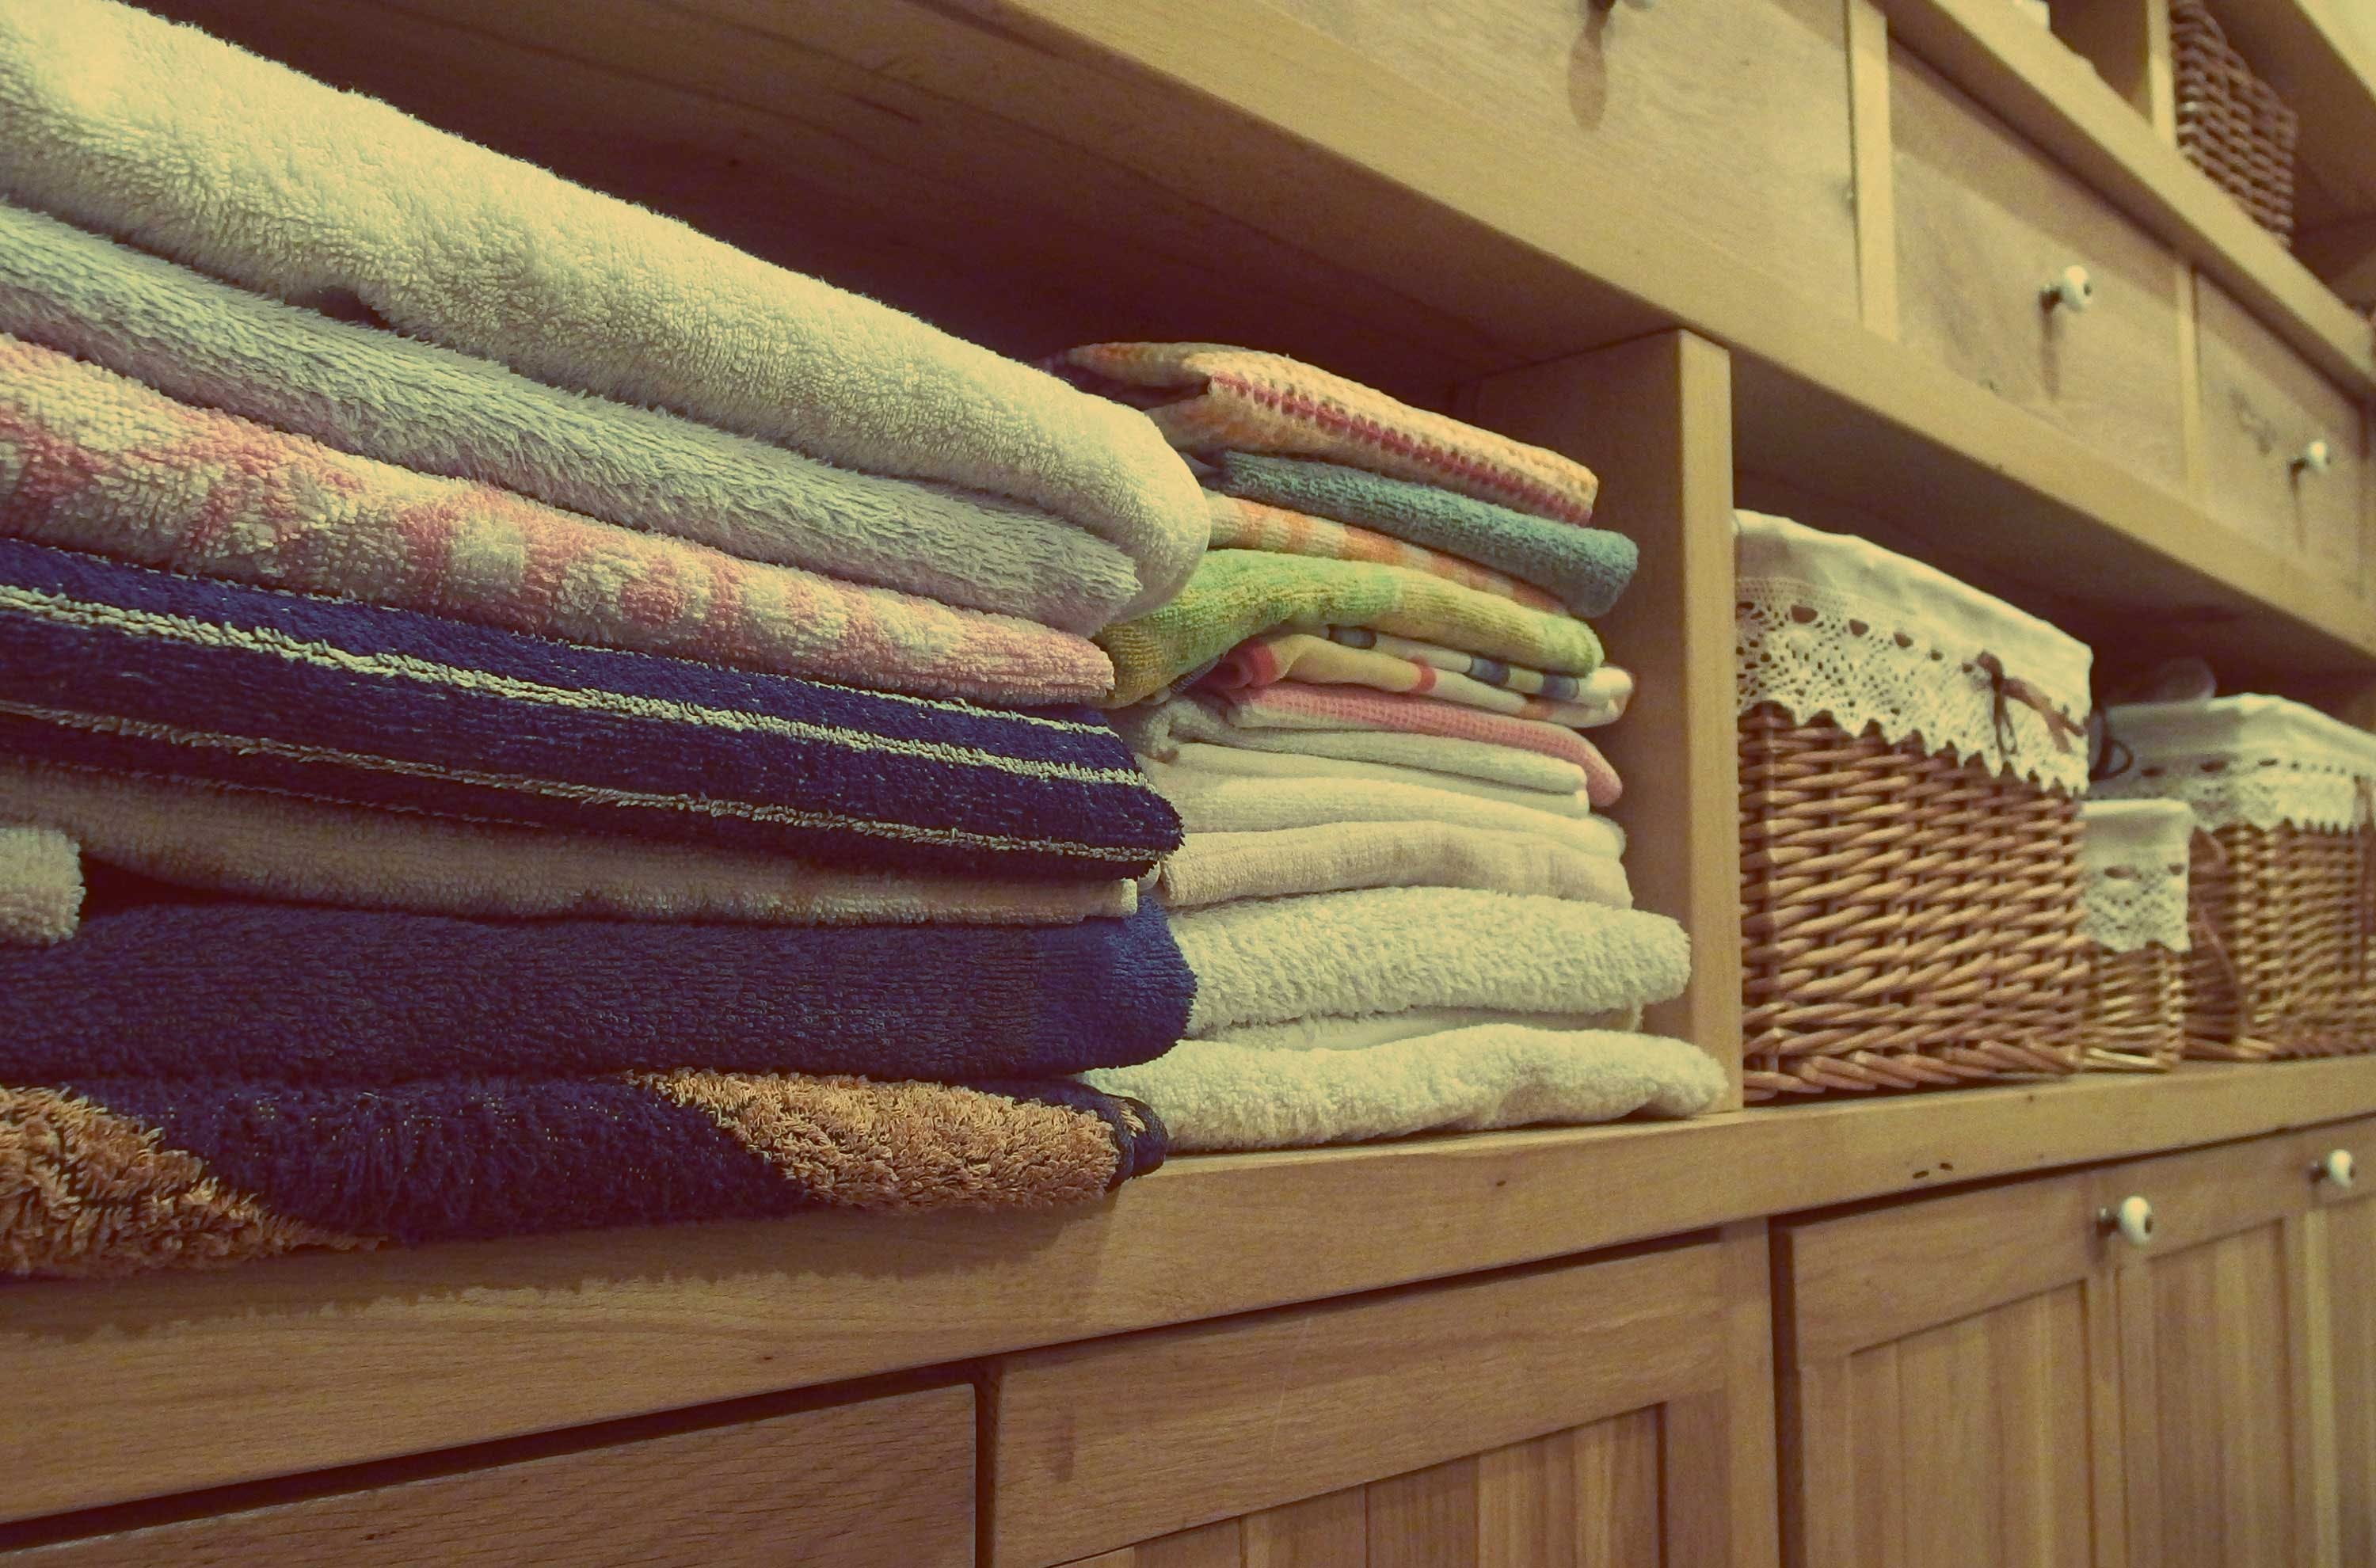 Stack of Towels on Rack